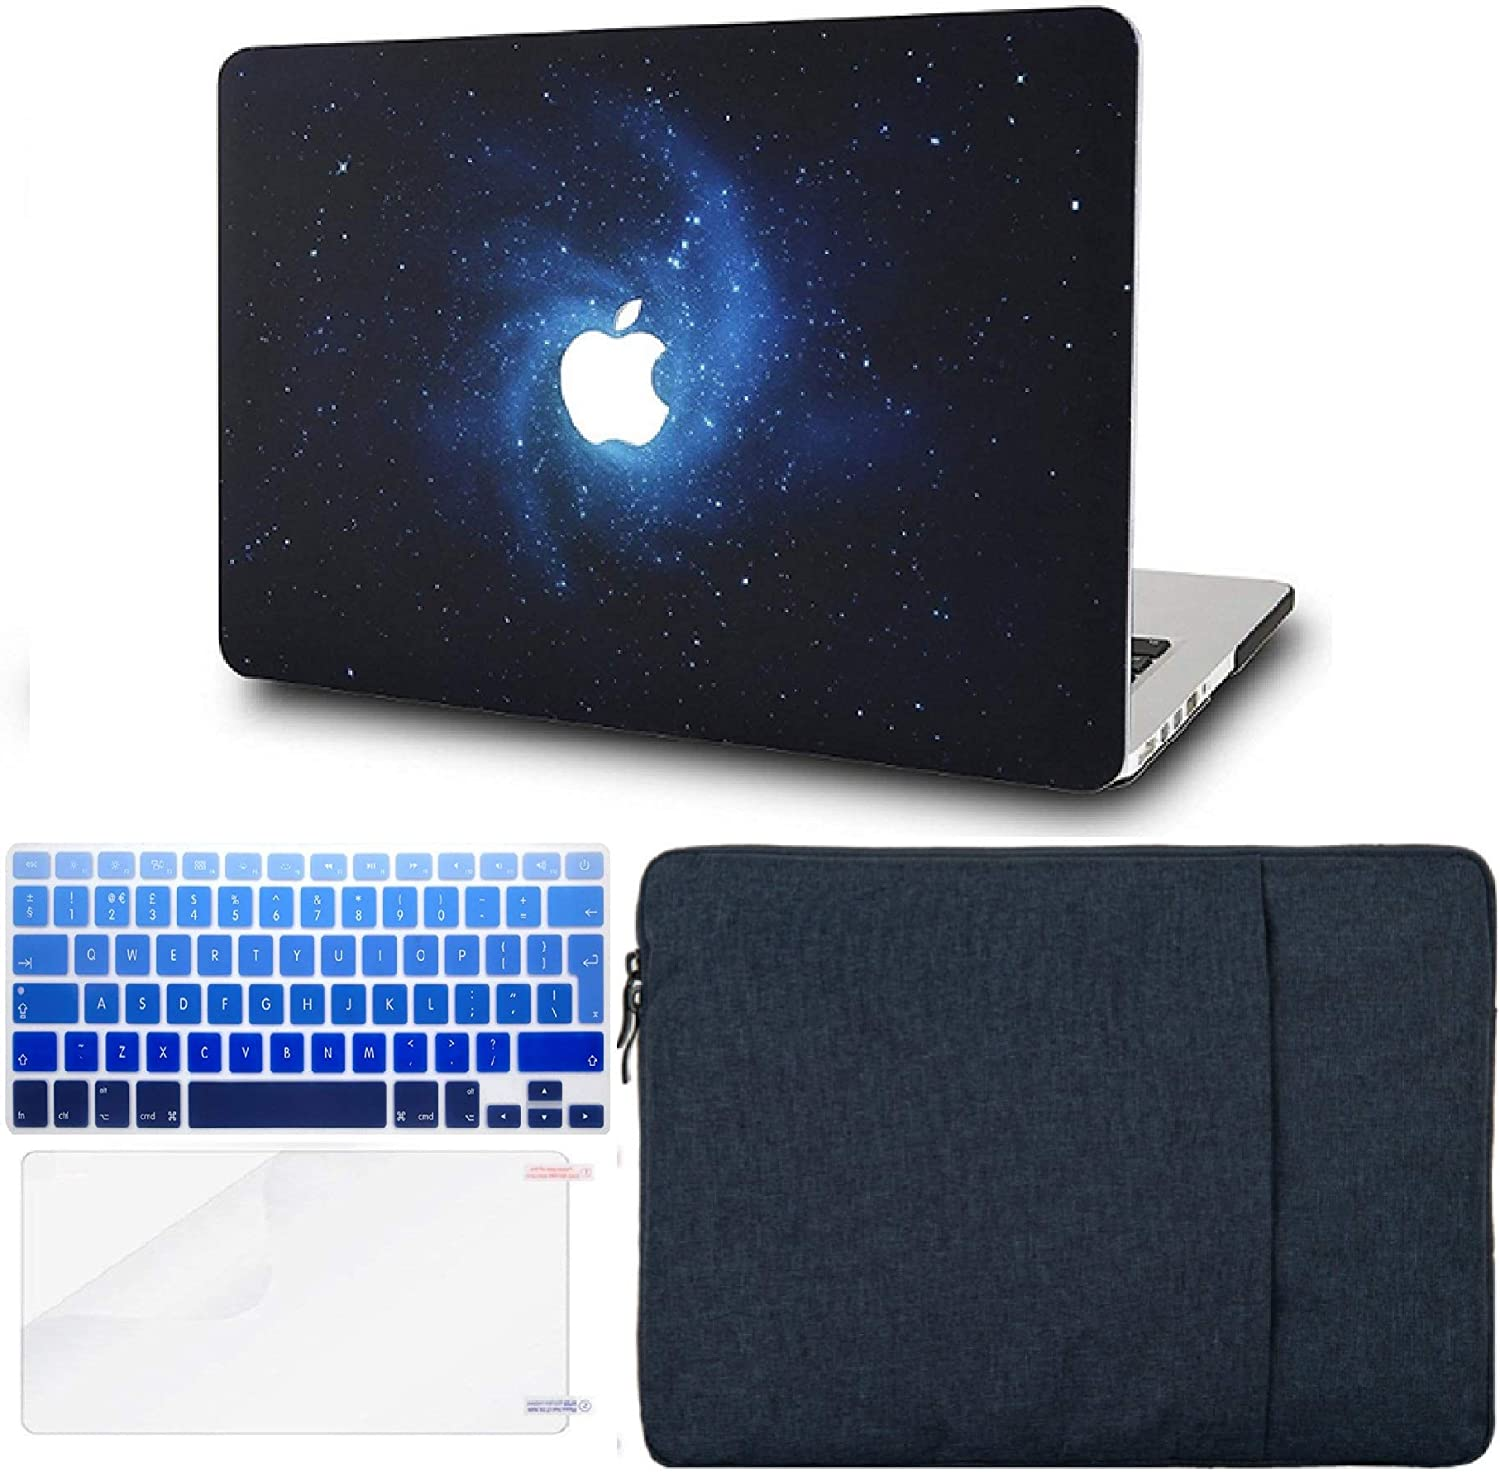 "KECC Laptop Case for MacBook Air 13"" Retina (2020/2019/2018, Touch ID) w/Keyboard Cover + Sleeve + Screen Protector (4 in 1 Bundle) Plastic Hard Shell Case A1932 (Blue)"